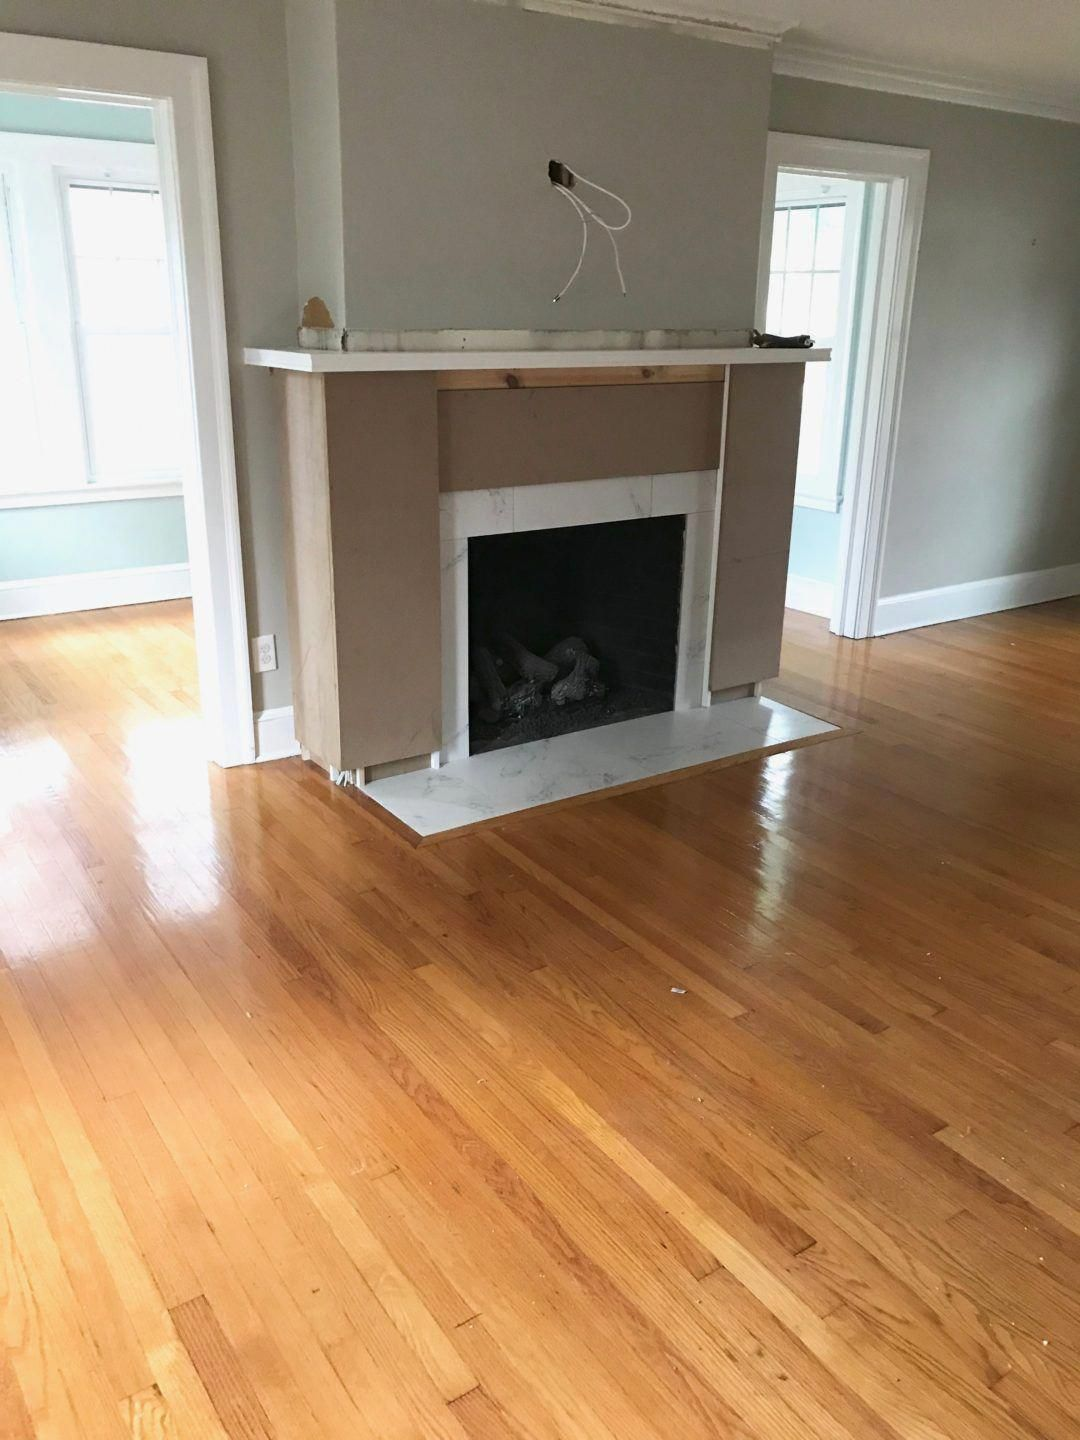 Fireplace makeover before and after covering the brick with wood